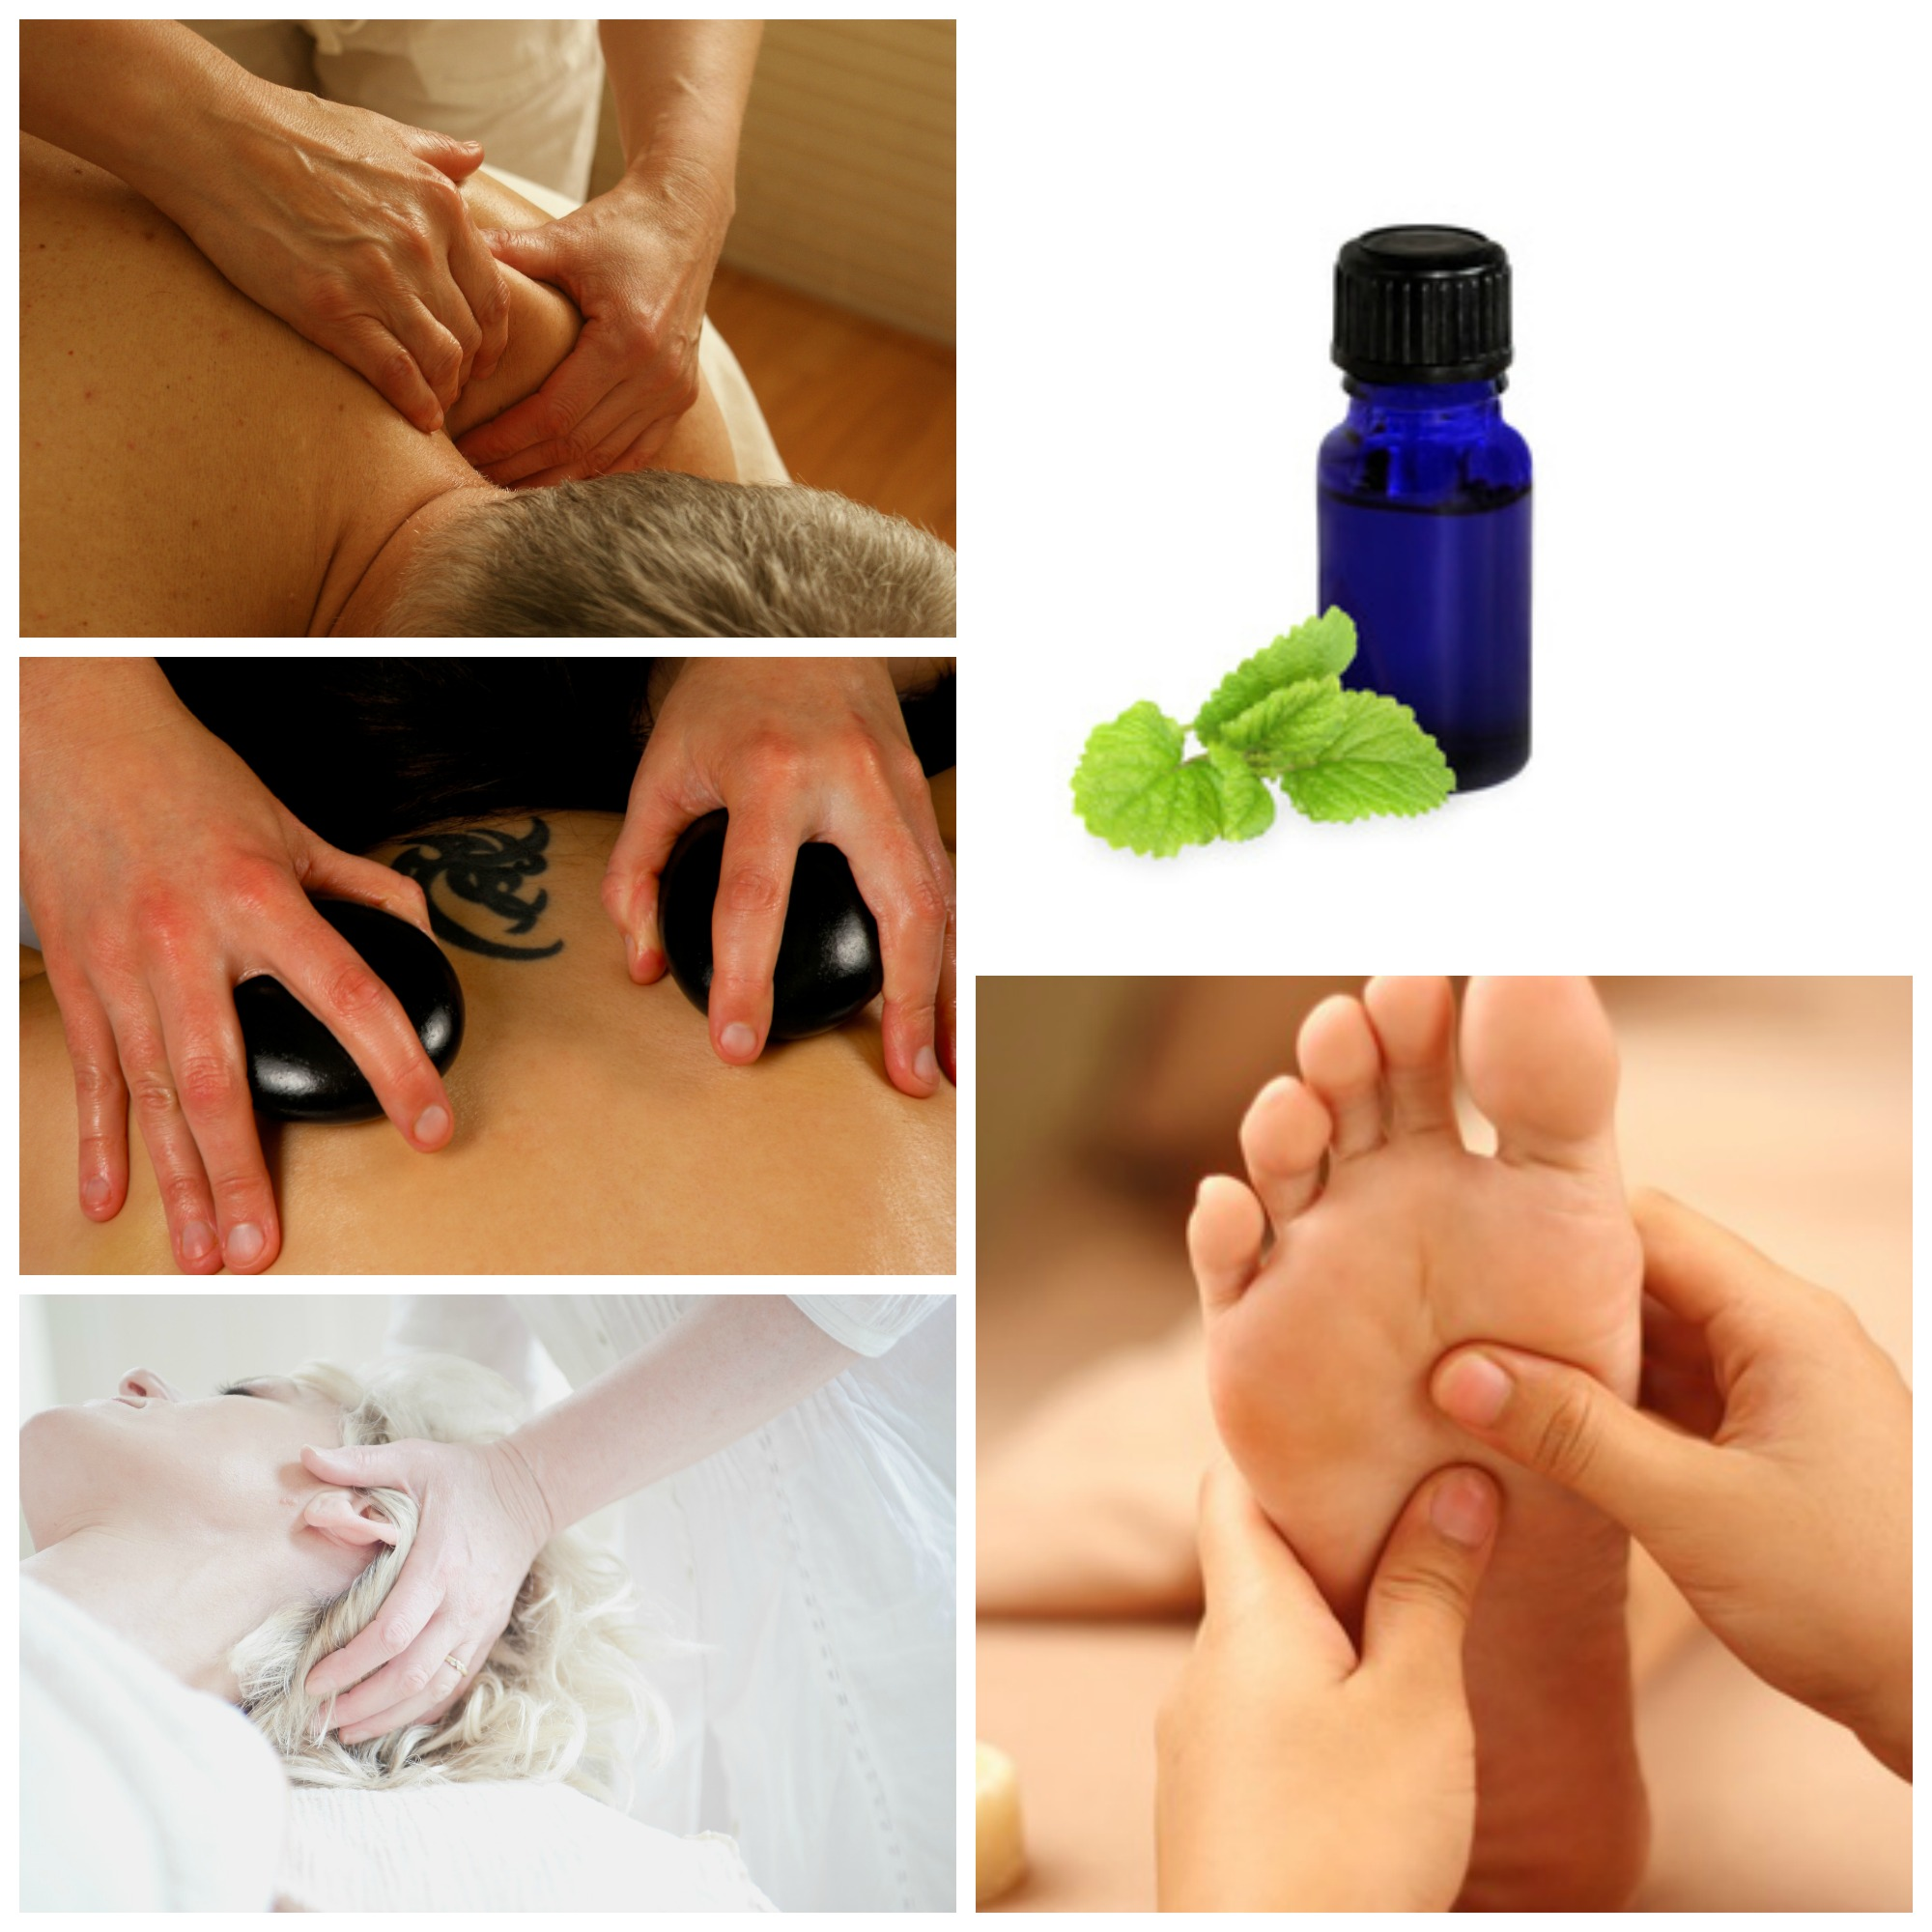 ofering Holistic Therapies